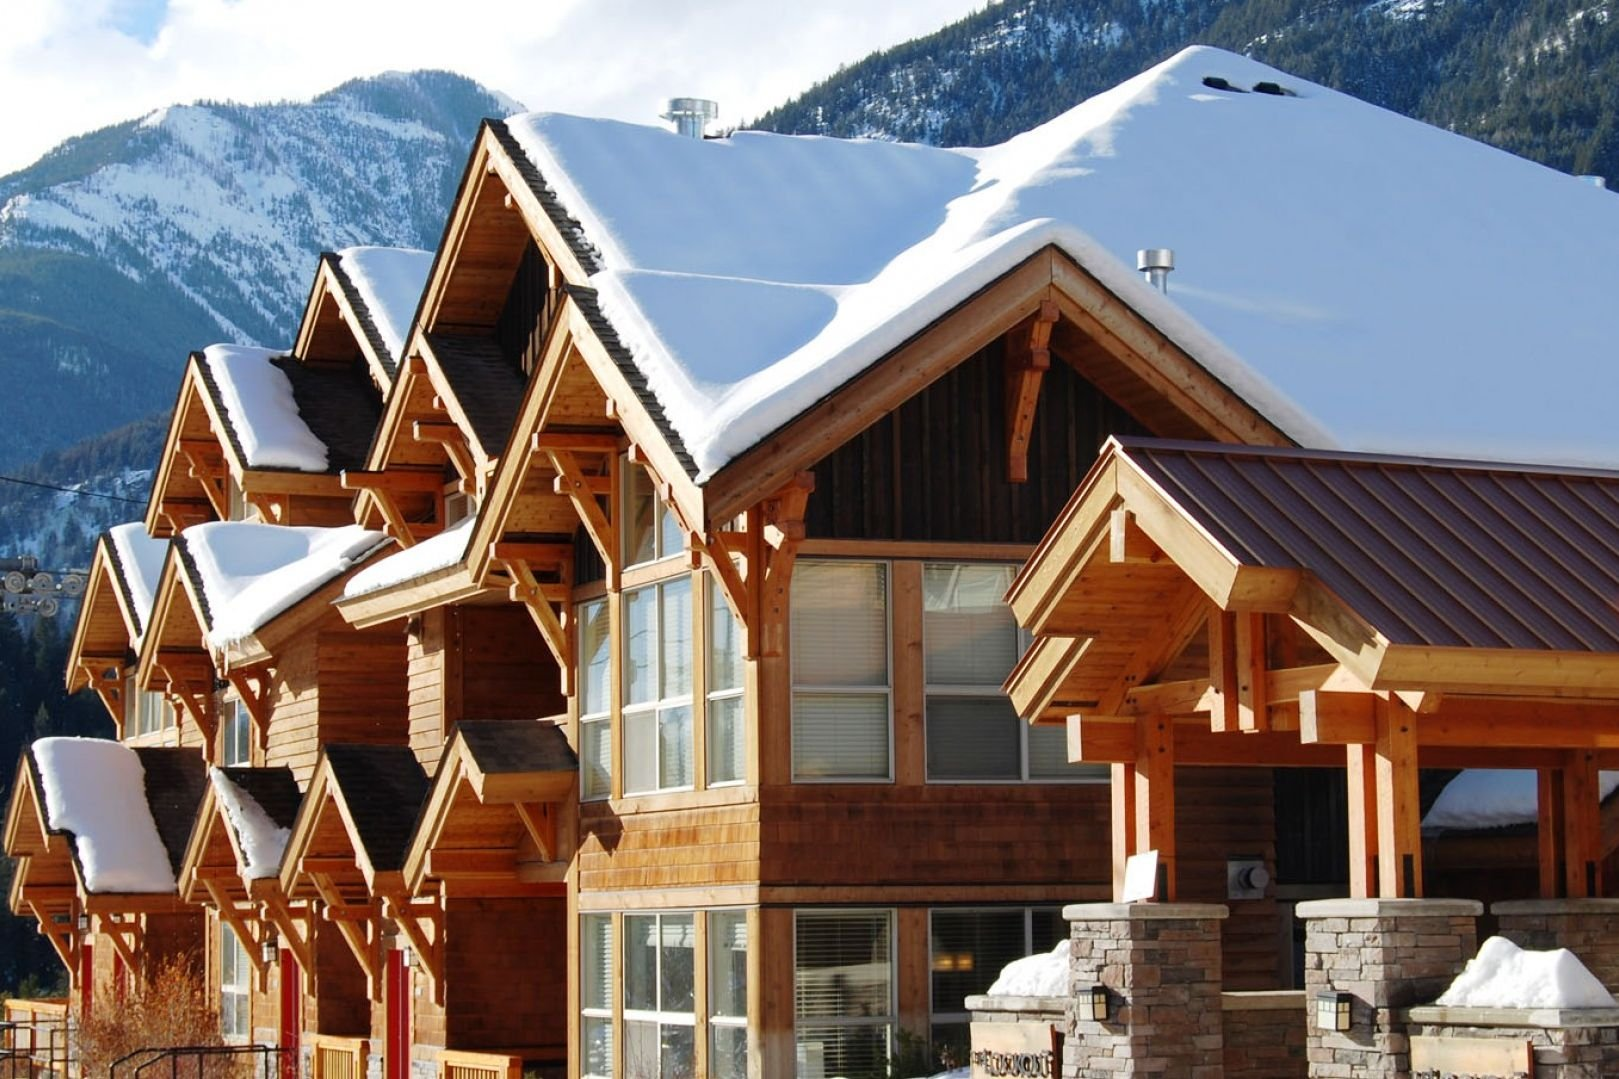 Panorama Mountain Village - lookout townhomes exterior.jpg